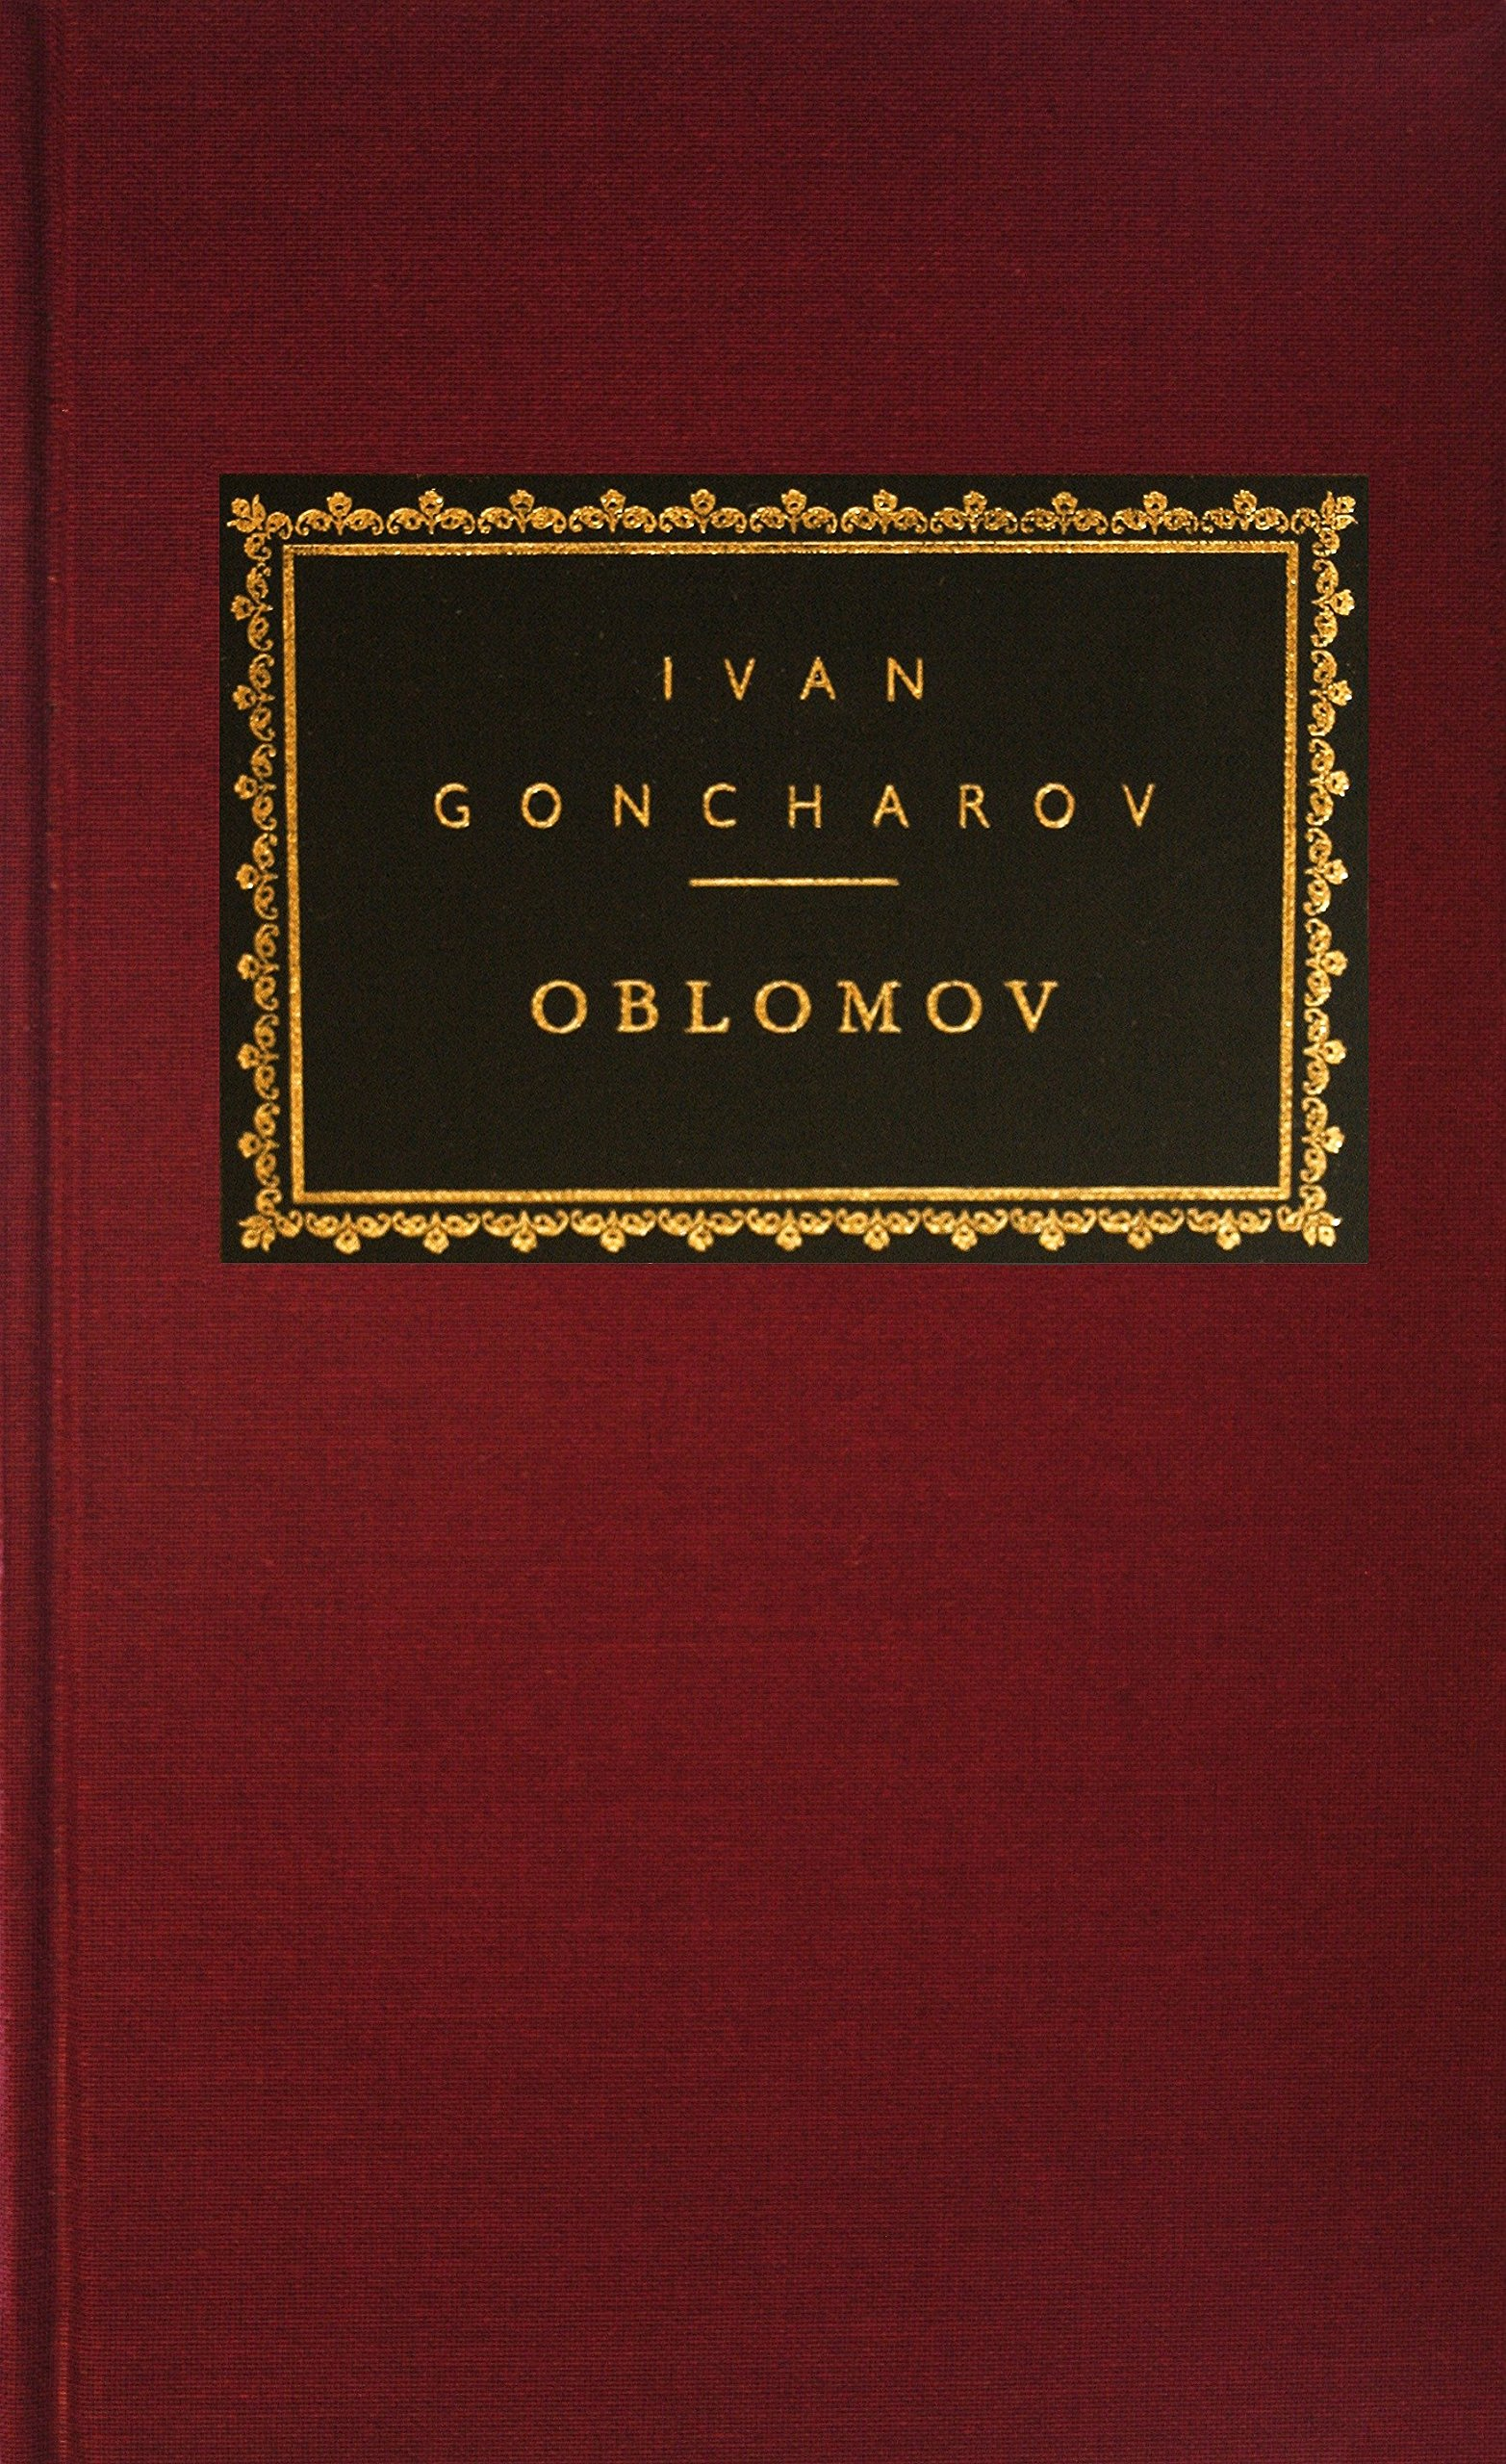 The relationship between Oblomov and Olga in the novel by IA Goncharov Oblomov